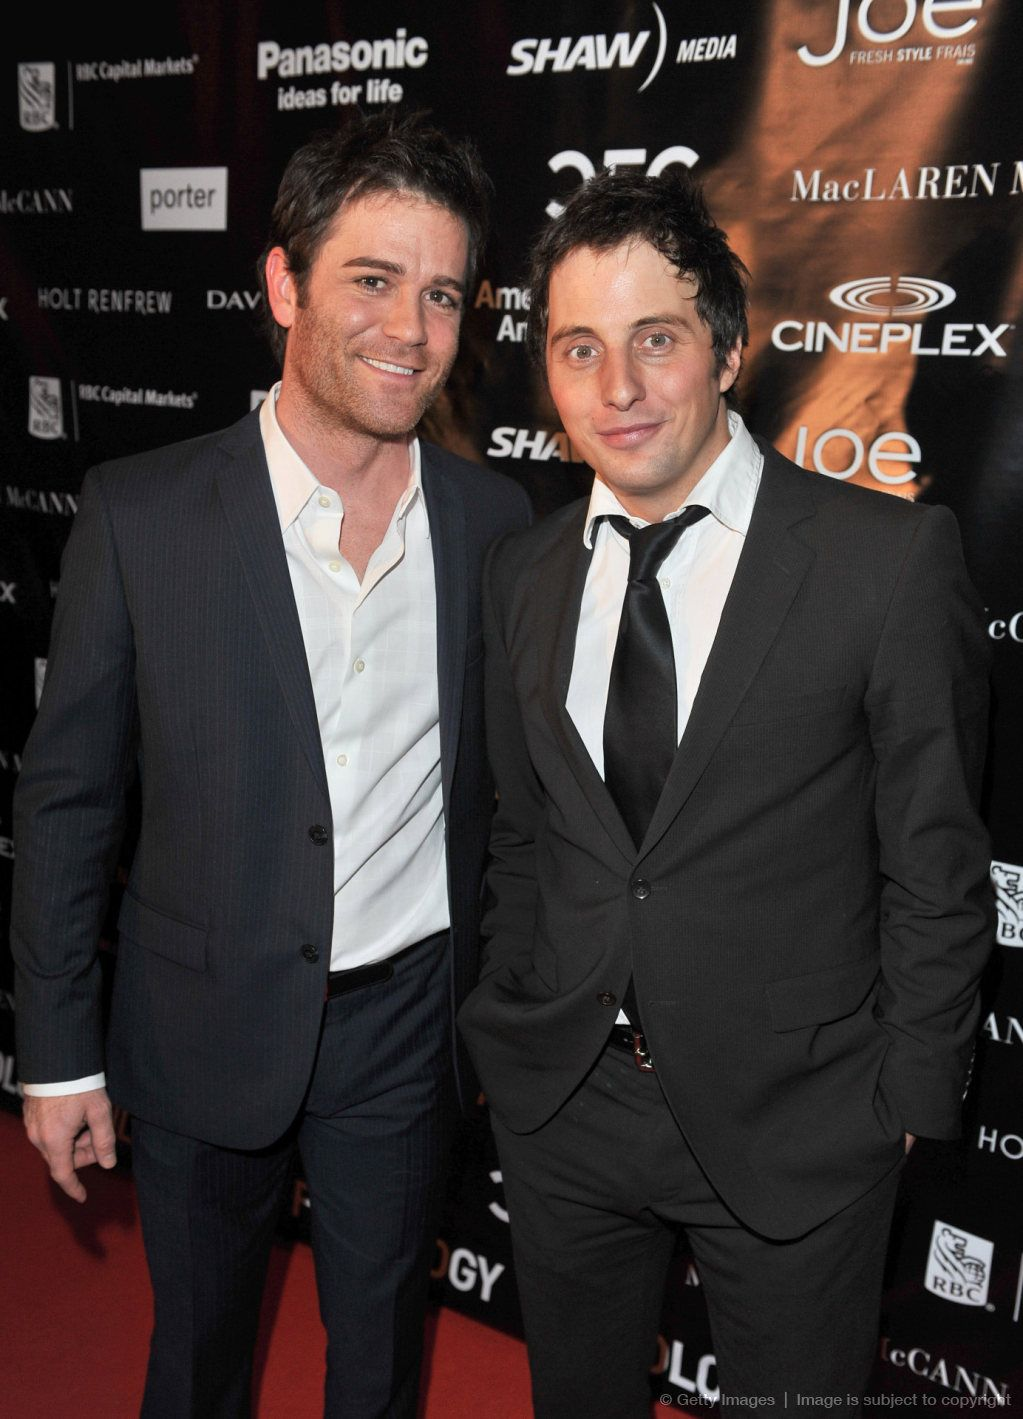 Yannick Bisson Canadian Film Centre 2011 Gala And Auction Murdoch Mysteries Mystery Tv Series Jonny Harris He is a canadian comedian and actor best known for his roles in various television series, such as still standing, murdoch mysteries, and hatching, matching and dispatching. pinterest